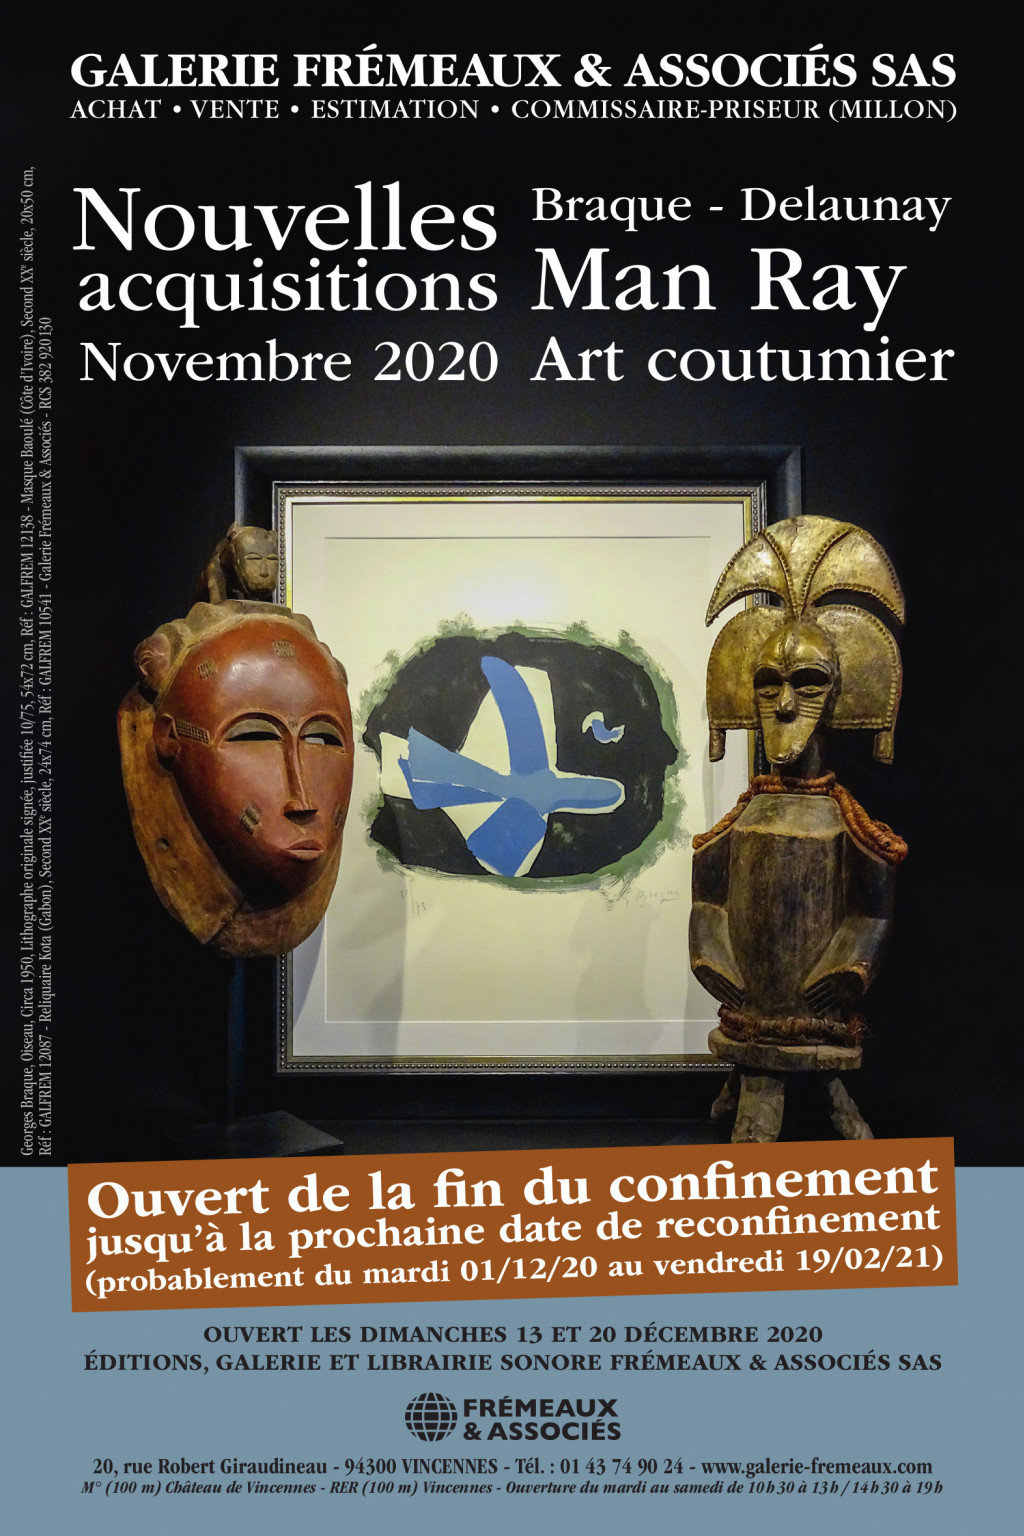 Nouvelles acquisitions 2020 - Braque, Delaunay, Man Ray, Art coutumier